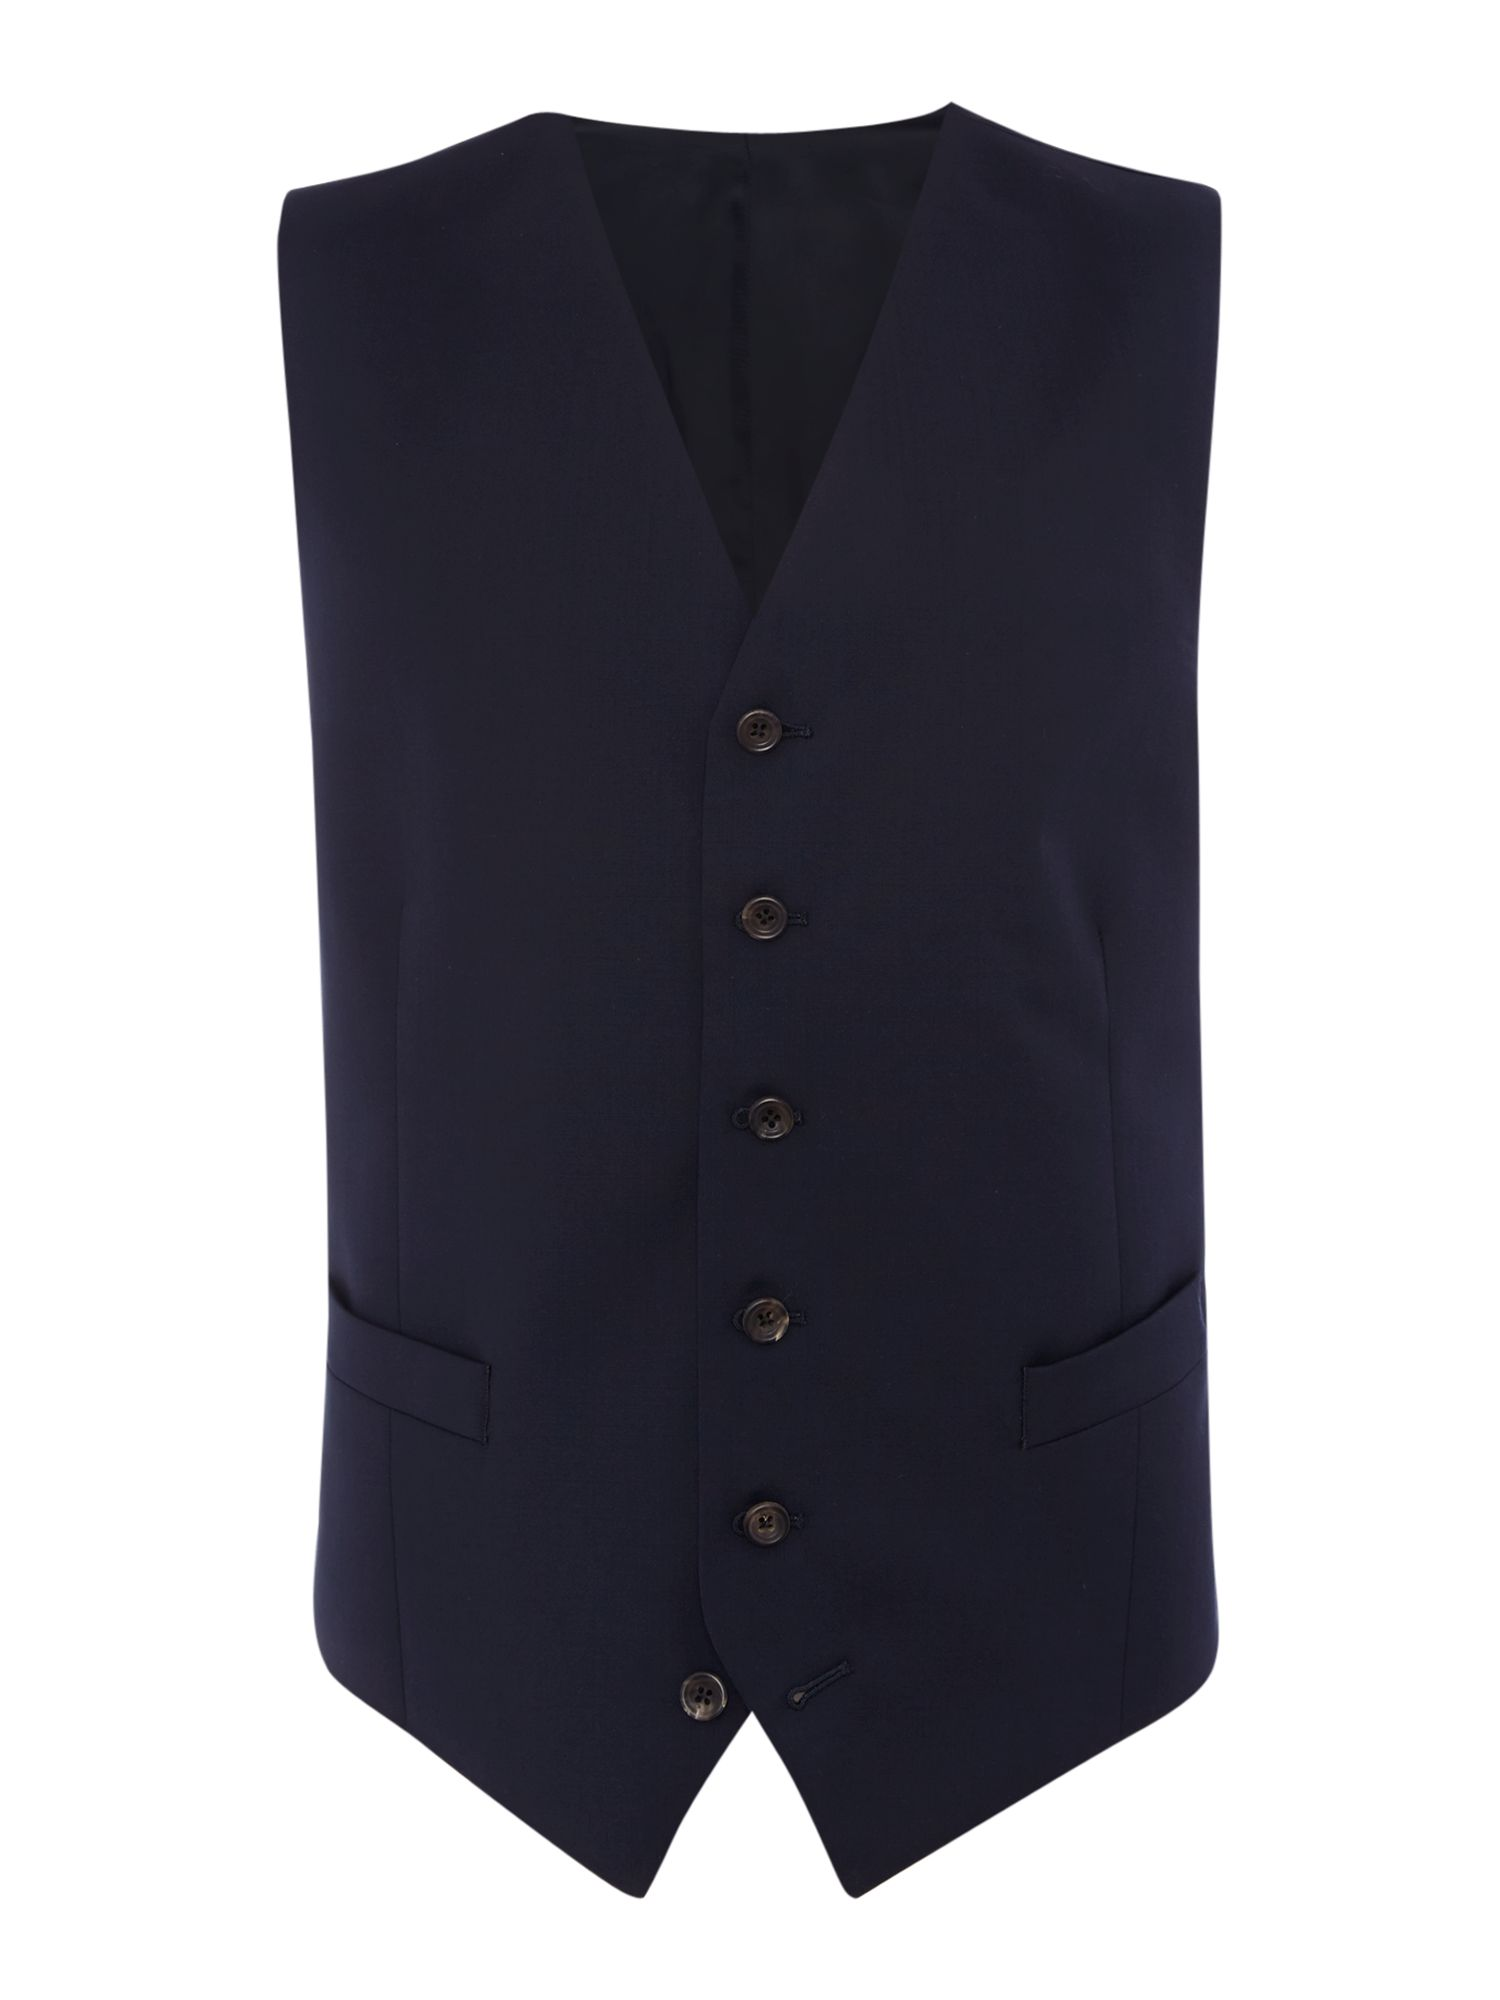 Men's Chester Barrie Plain Tailored Fit Waistcoat, Navy